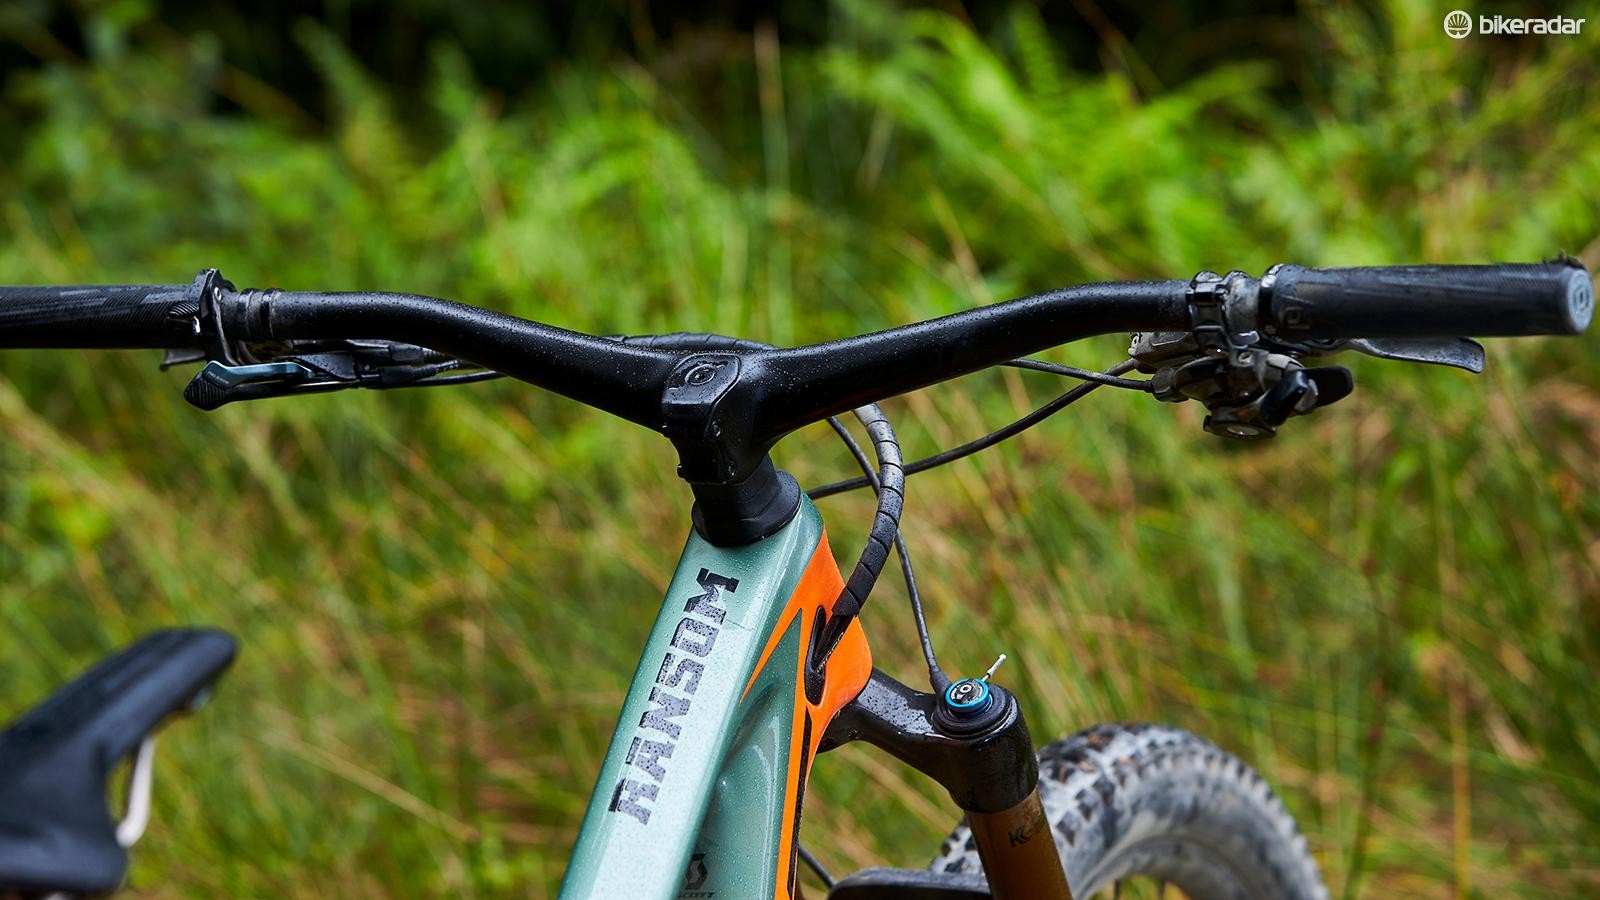 Not everyone will get on with the integrated bar and stem, though this latest version has a higher 20mm rise and is available in 780 or 800mm options. This integrated system offers up an effective 50mm stem length